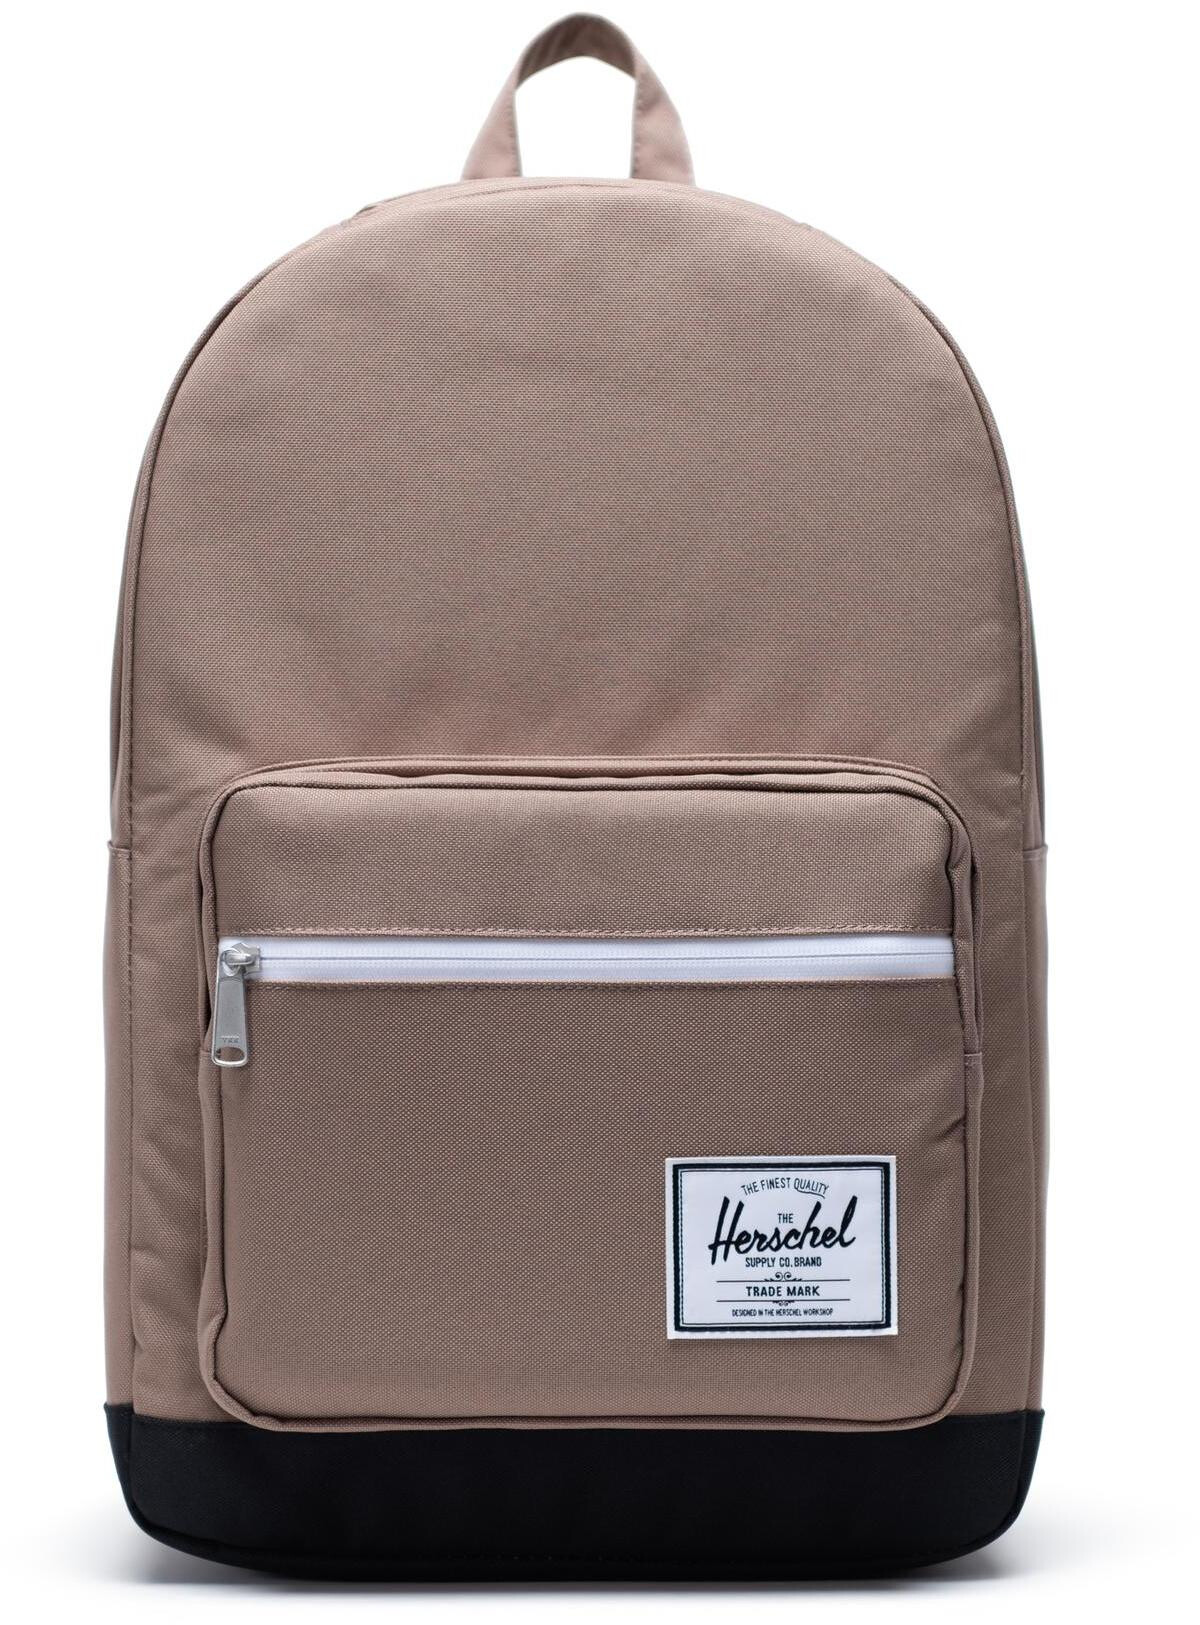 Herschel Pop Quiz Rygsæk, pine bark/black (2019) | Travel bags